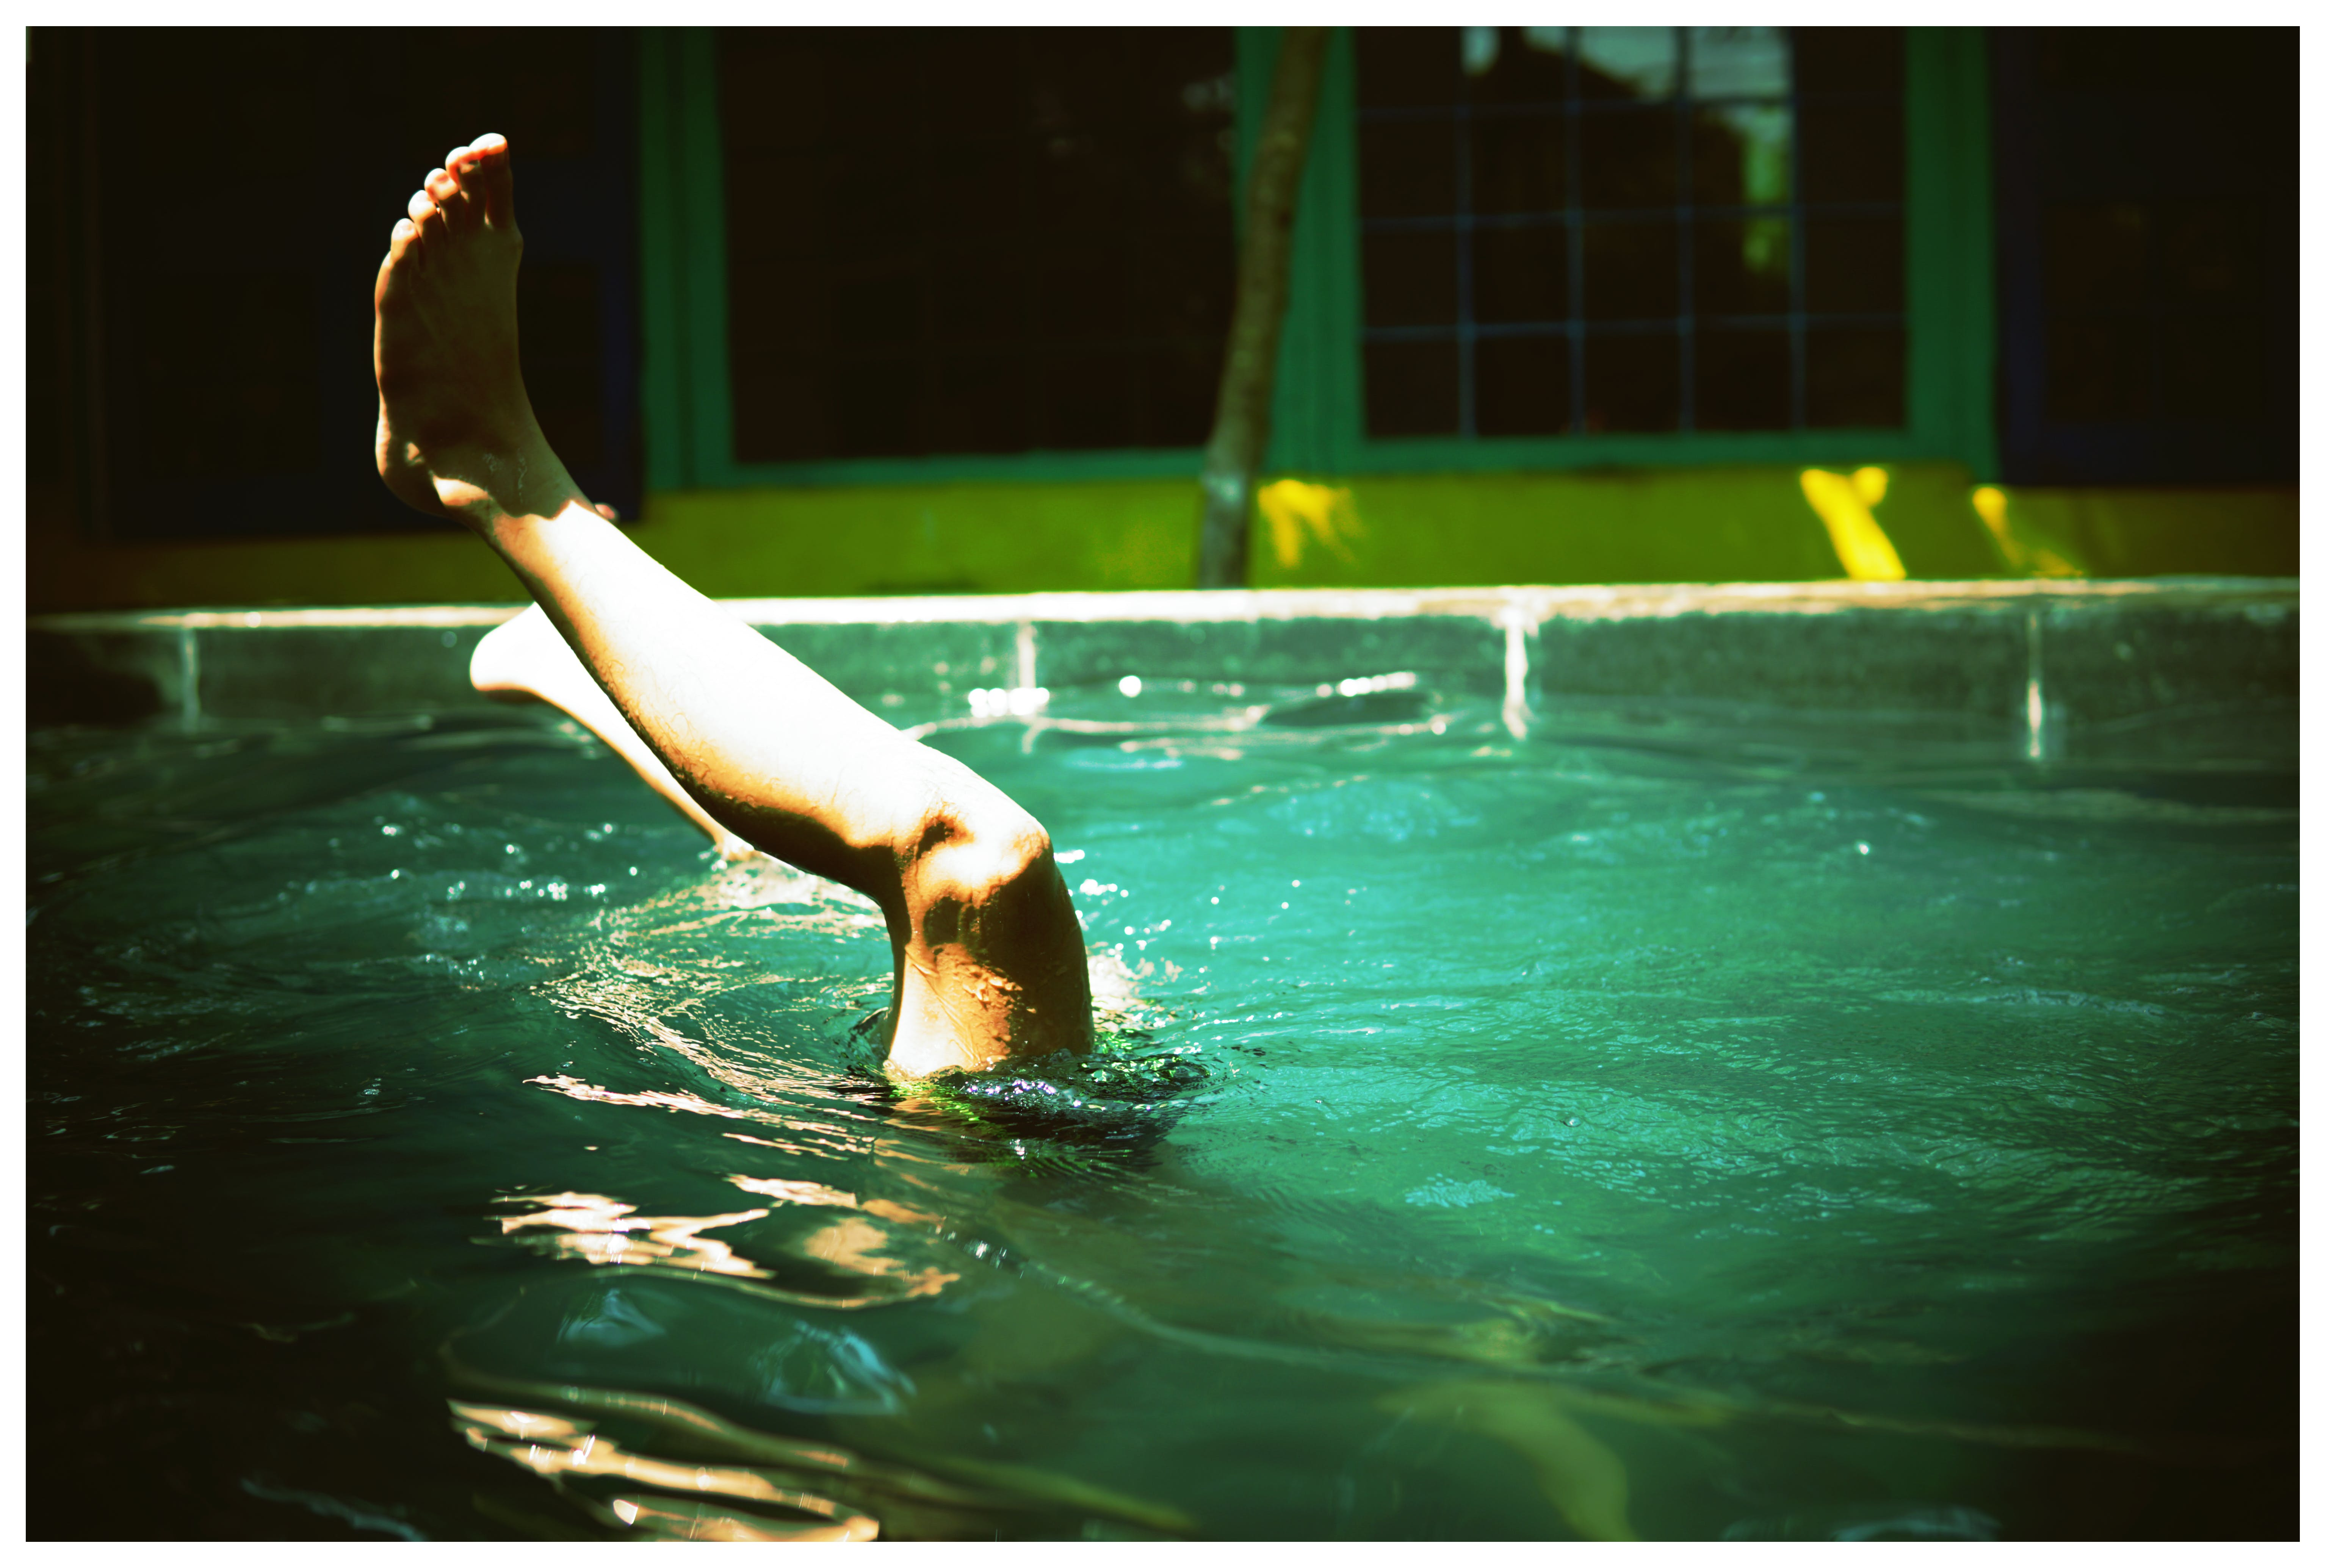 Person Swimming on Pool With Feet in the Air